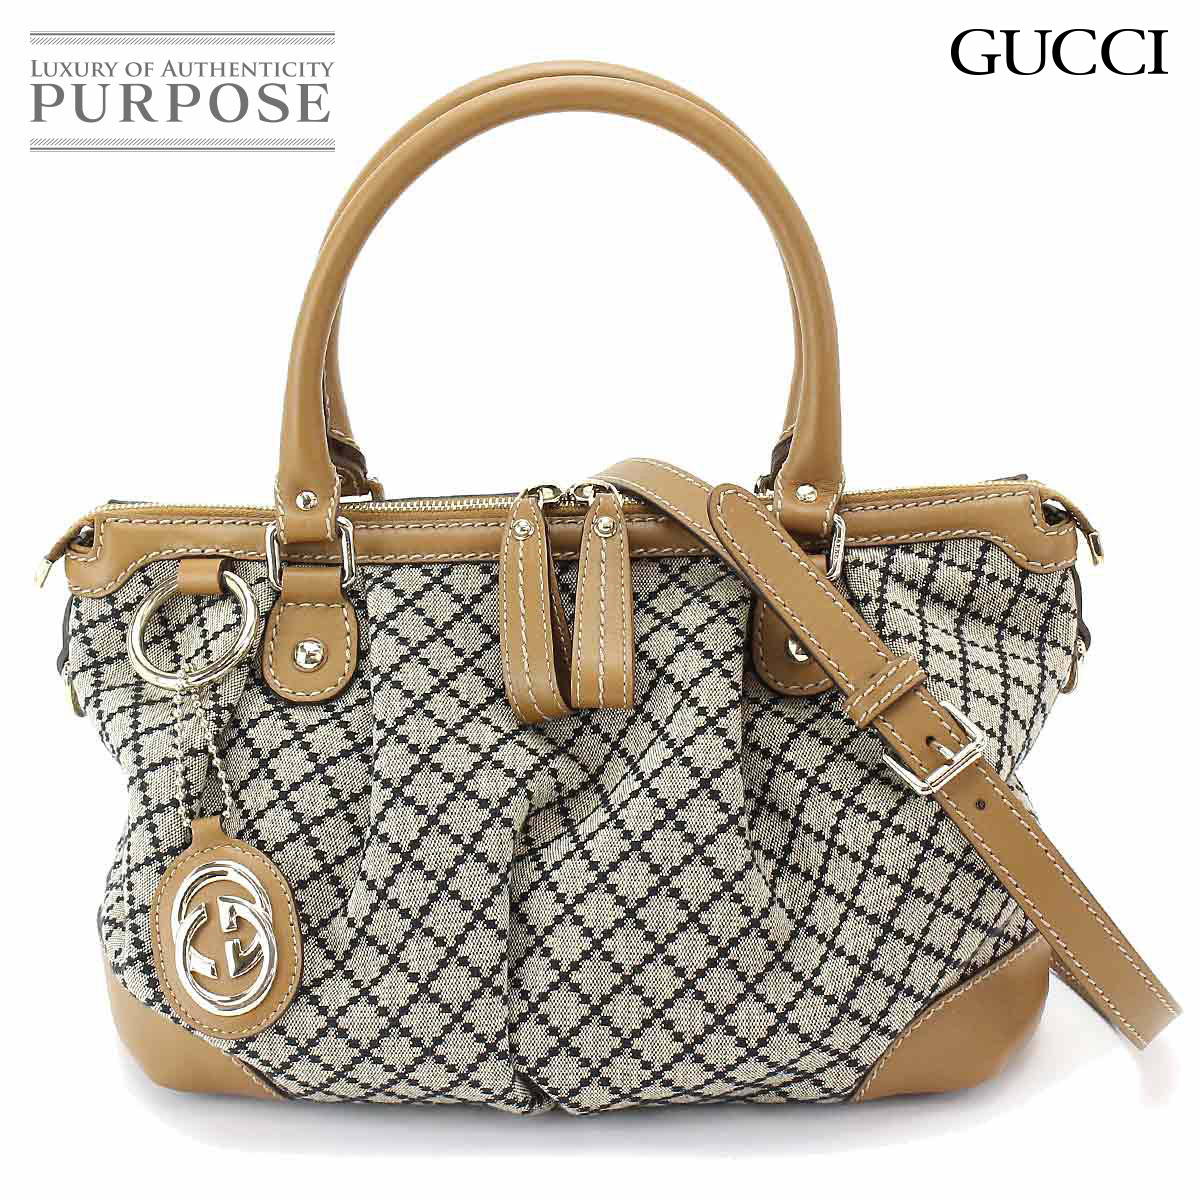 5c5c2ab3fabe92 Purpose Inc: Gucci GUCCI Diamante Sioux key 2way hand shoulder bag canvas  leather beige brown 247902 001998 | Rakuten Global Market